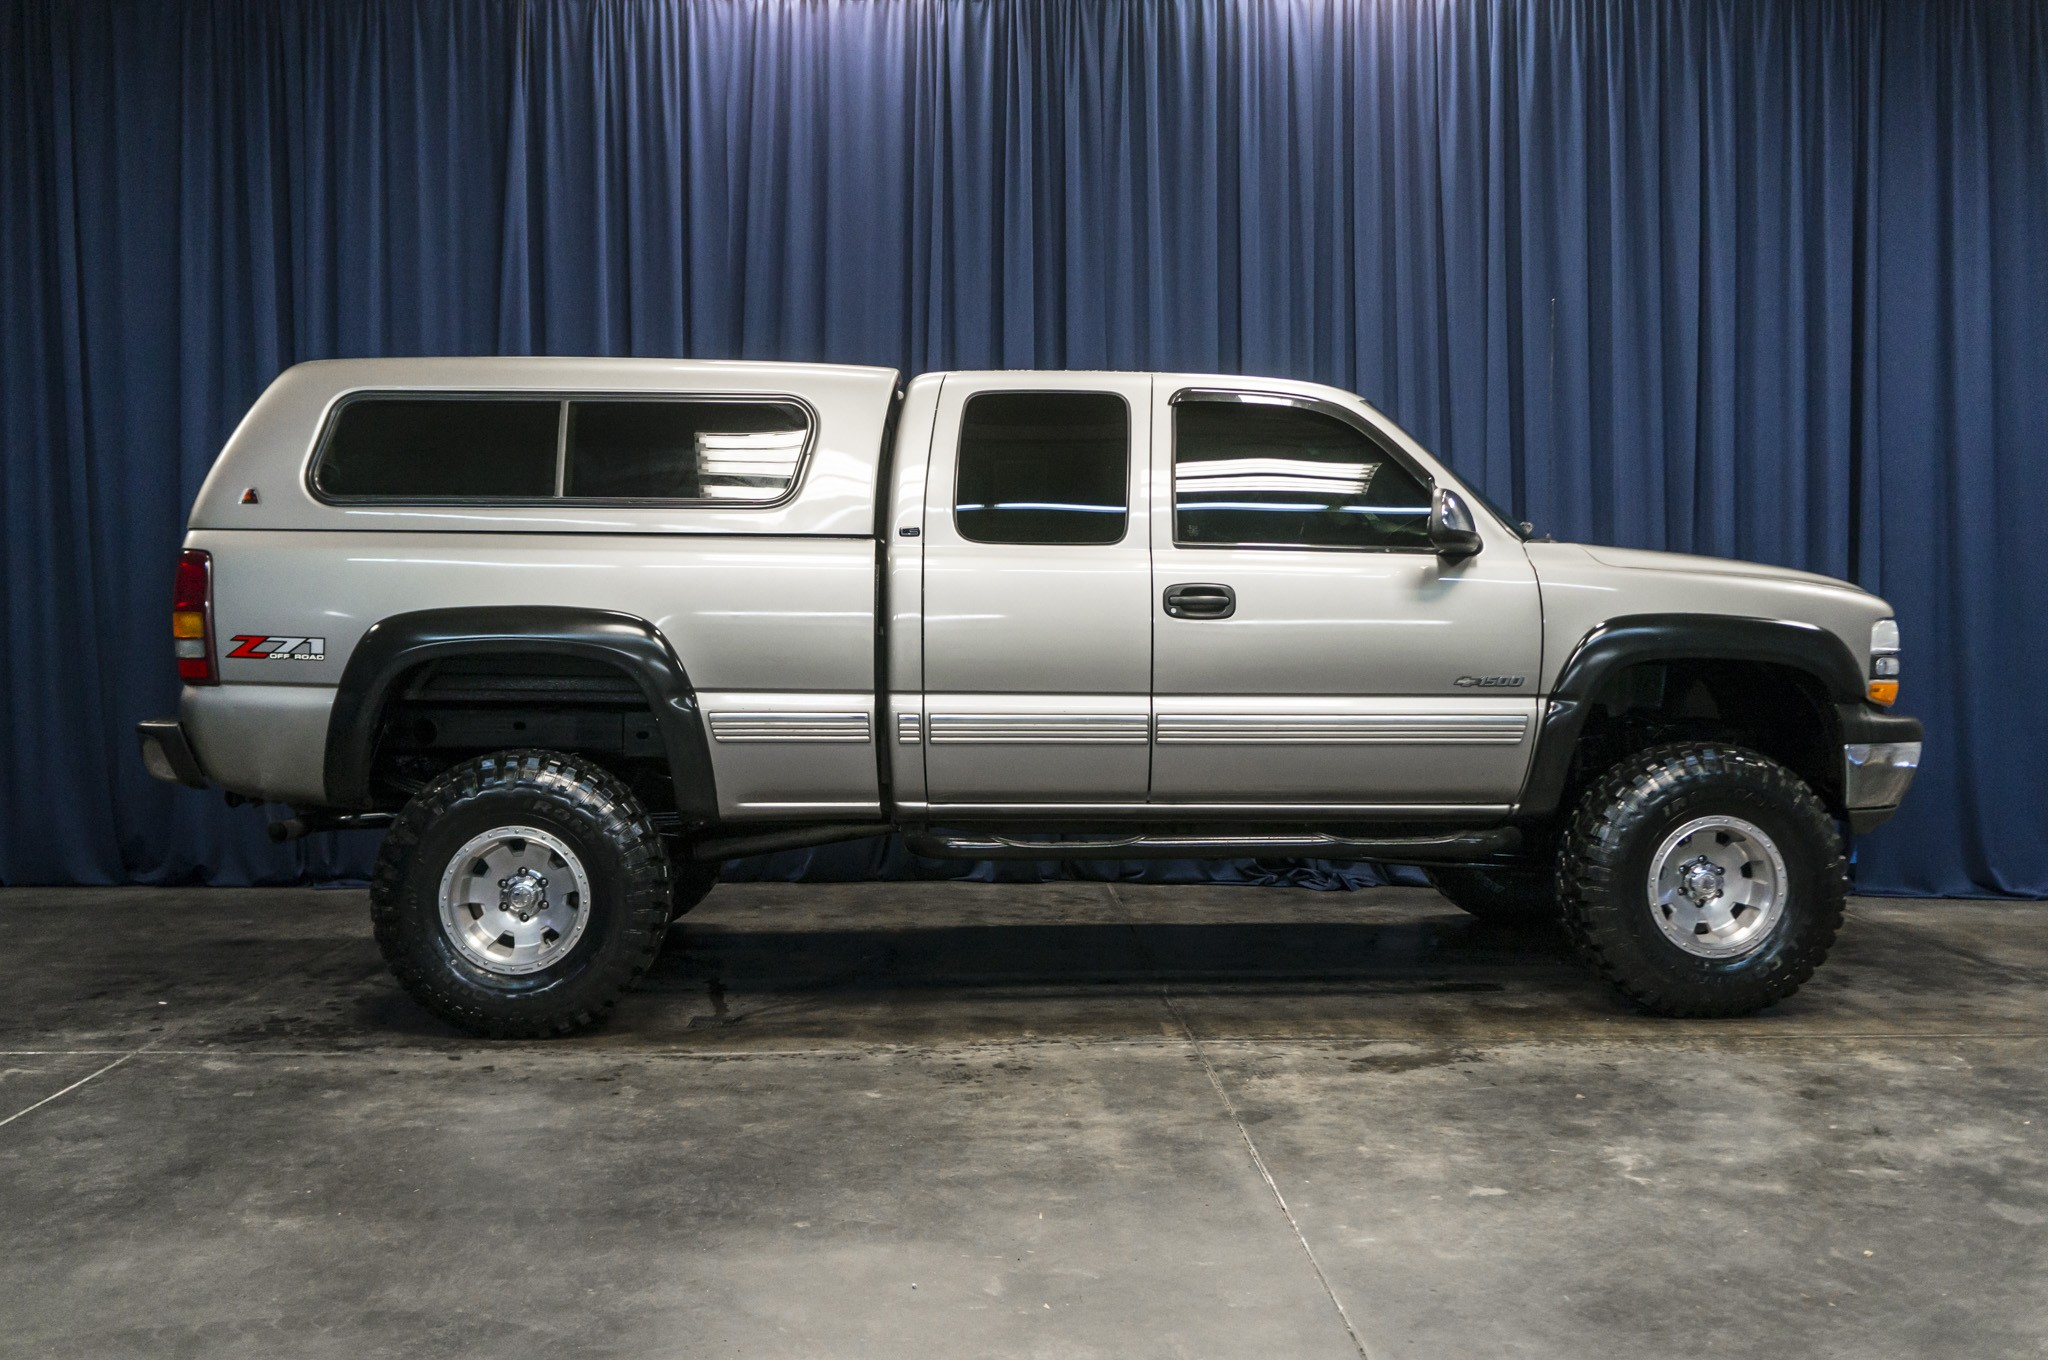 Used lifted 2002 chevrolet silverado 1500 ls 4x4 truck for sale used lifted 2002 chevrolet silverado 1500 ls 4x4 truck for sale northwest motorsport sciox Choice Image